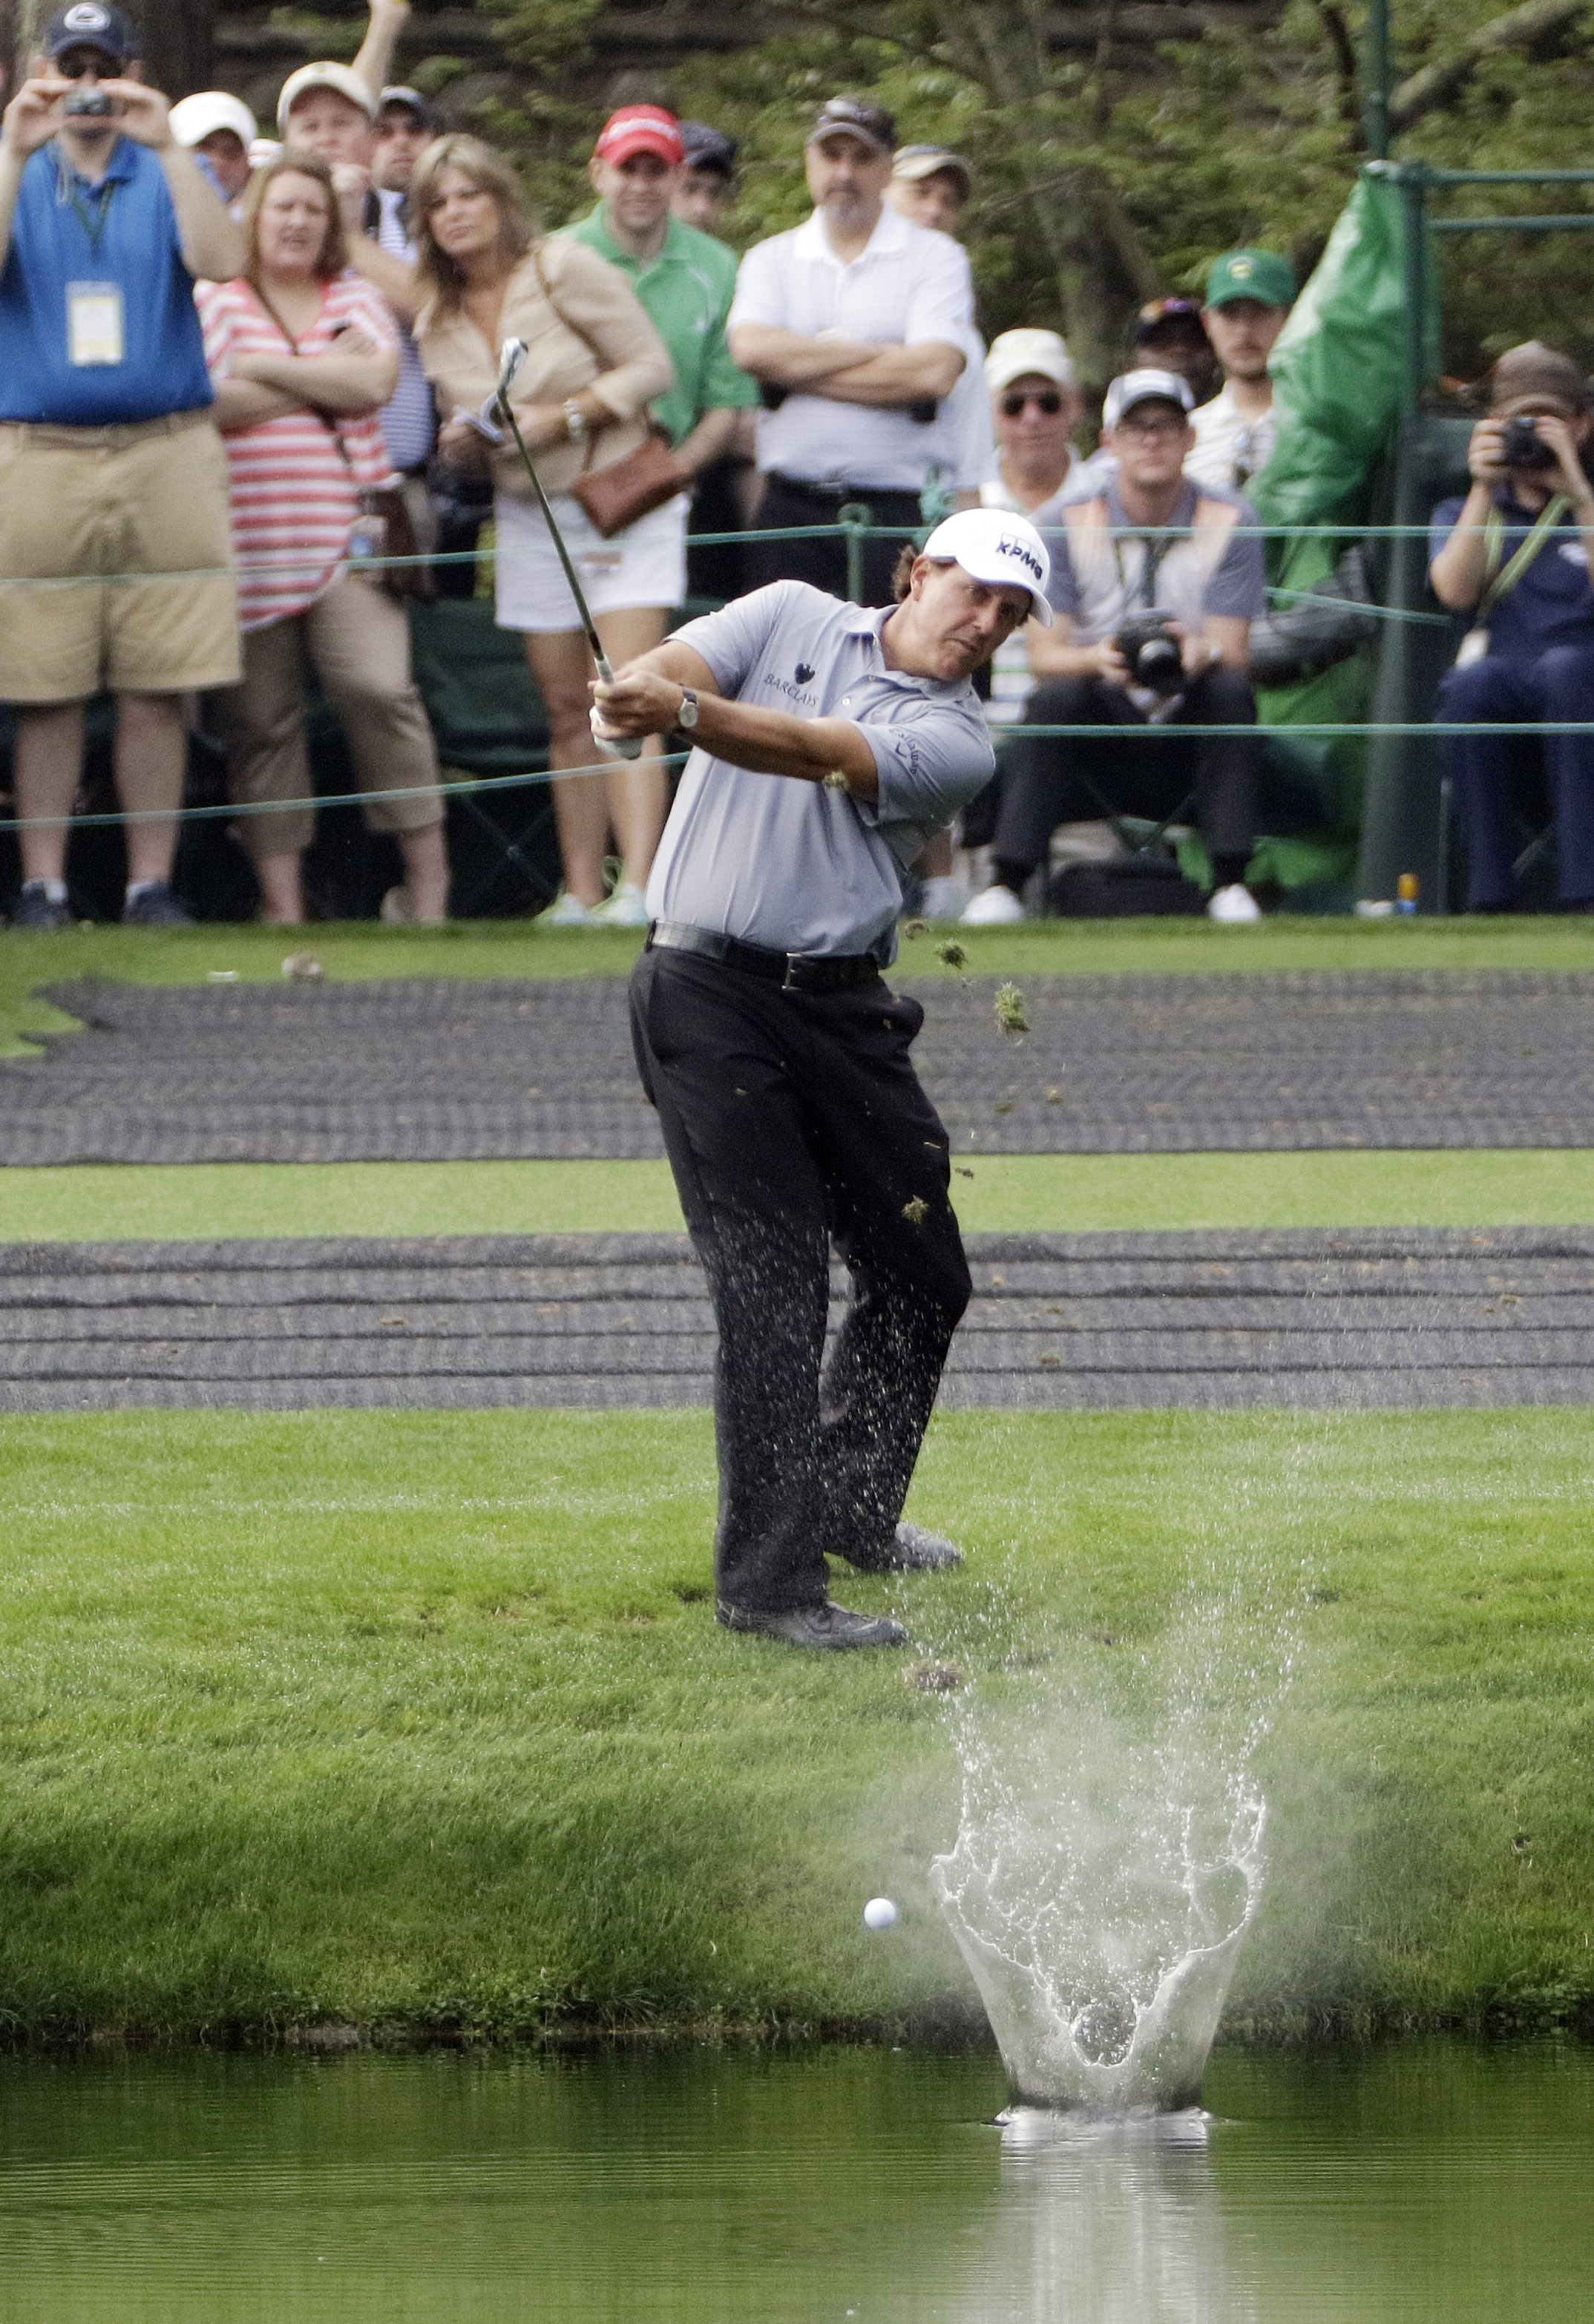 FILE - In this April 8, 2015, file photo, Phil Mickelson skips a ball across the water hole on the 16th fairway during a practice round for the Masters golf tournament in Augusta, Ga. For many, the 16th hole is the place to be before the first major of th